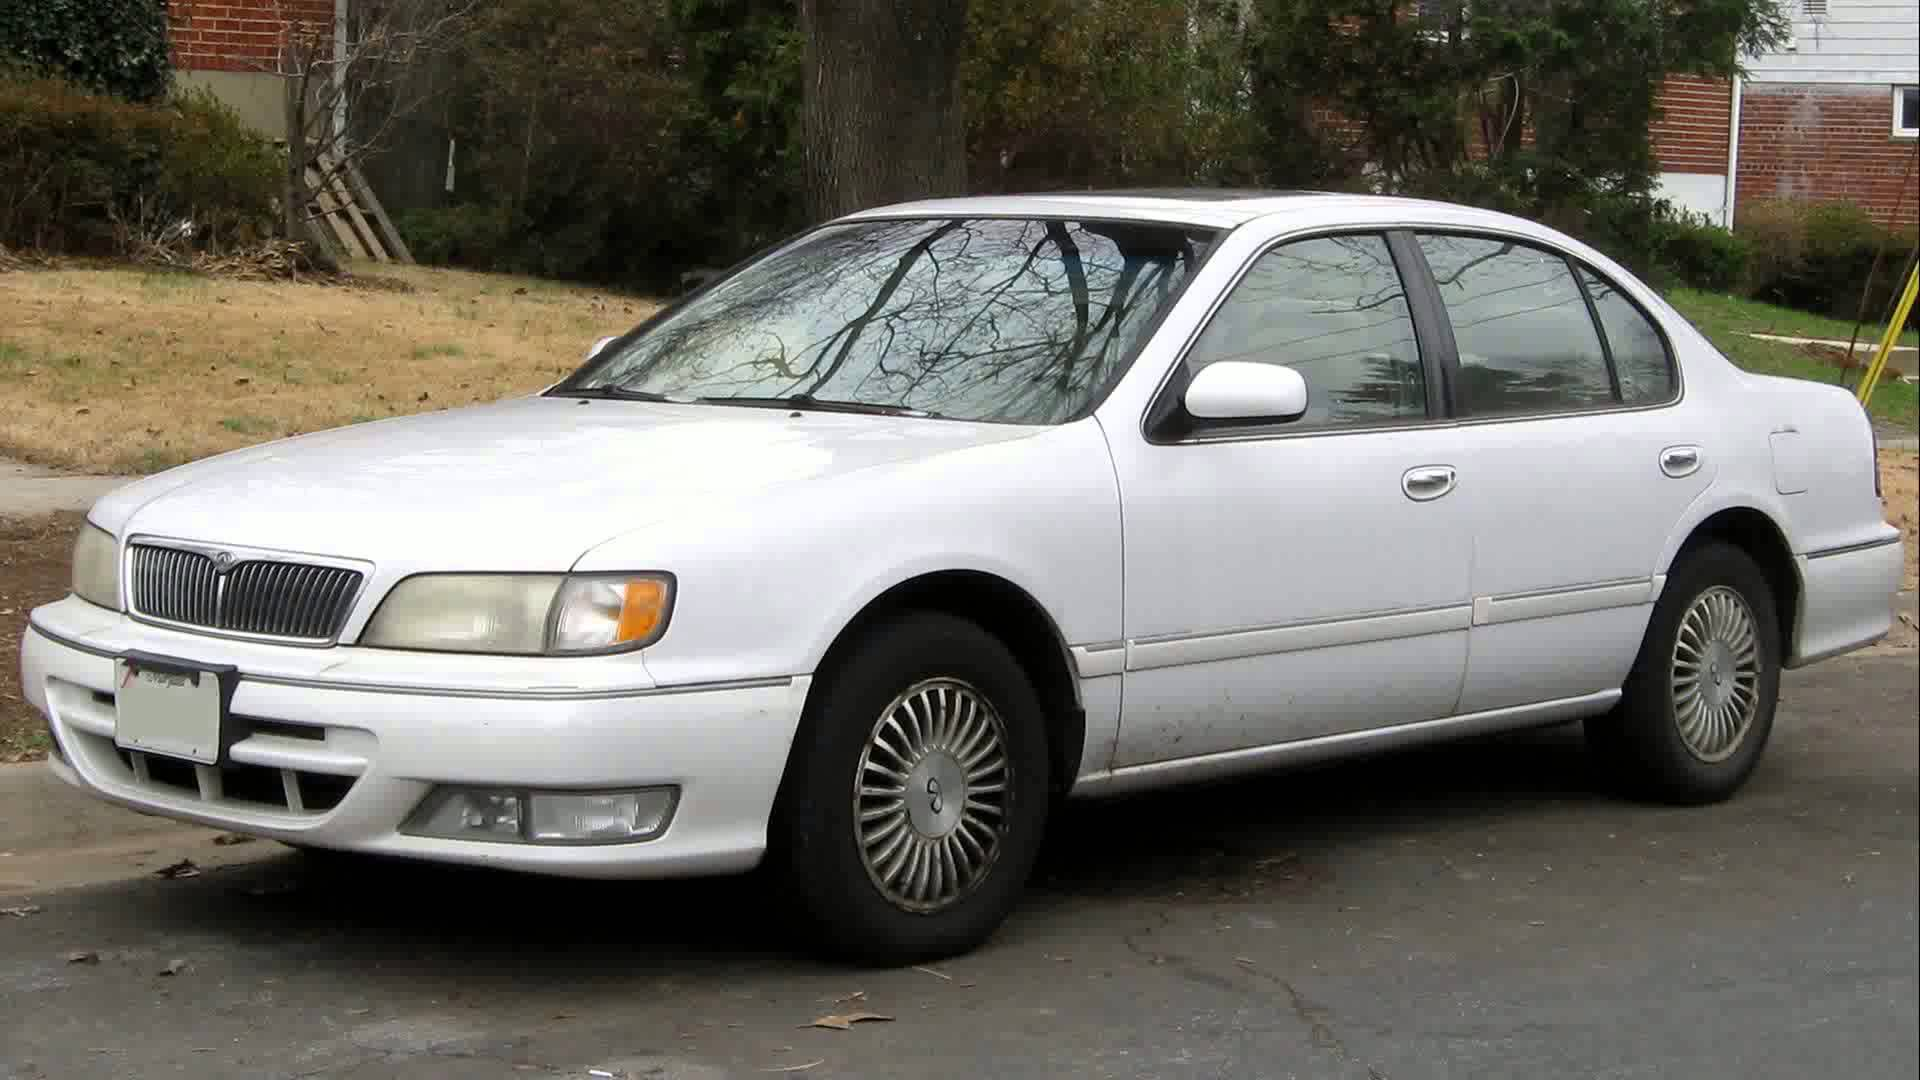 1998 nissan maxima qx a32 pictures information and specs auto. Black Bedroom Furniture Sets. Home Design Ideas